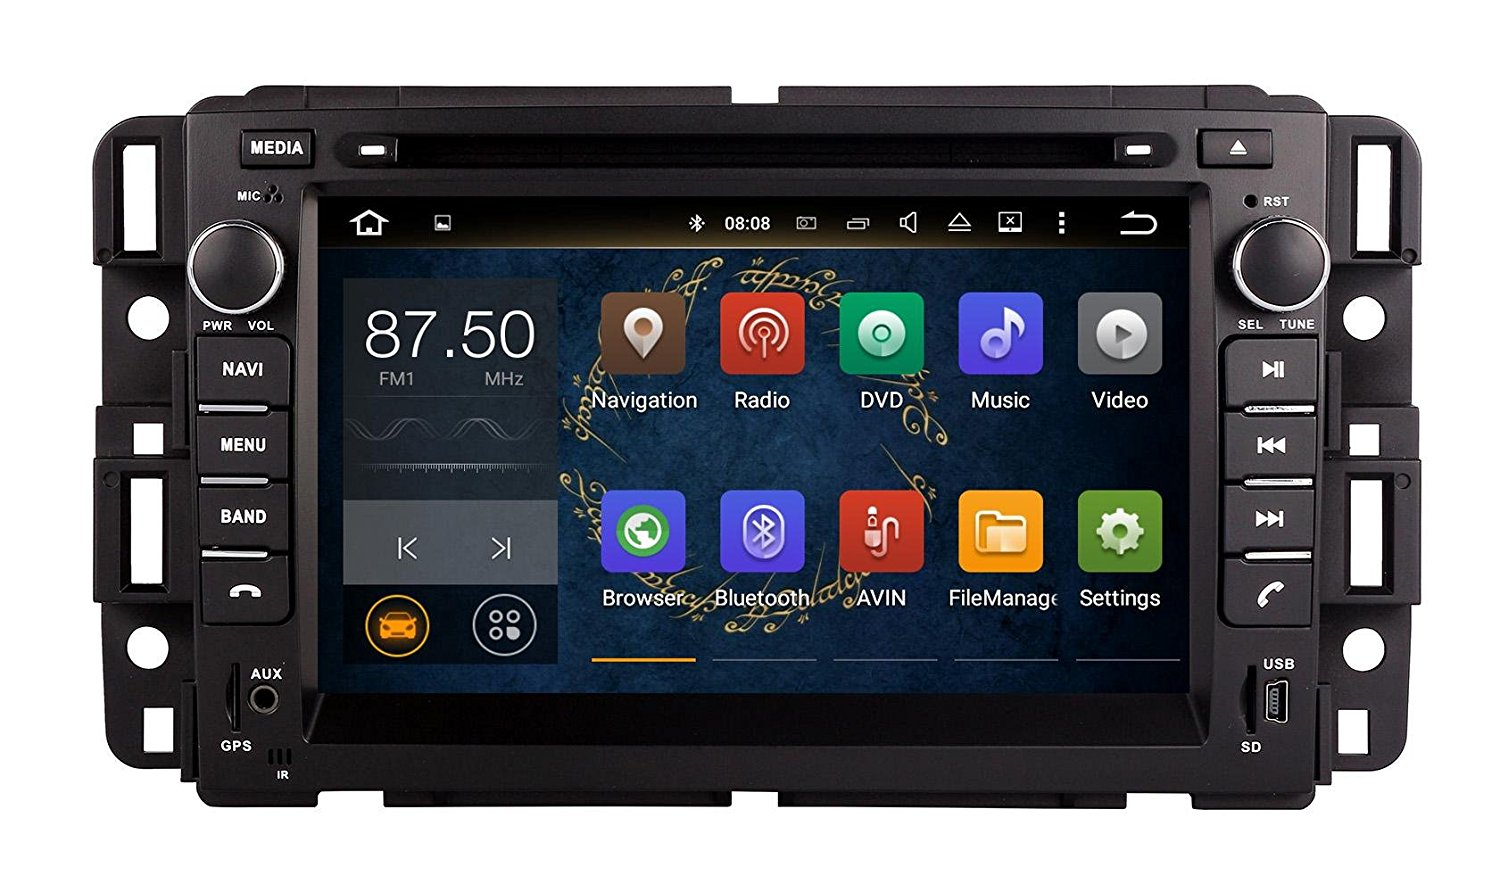 XTTEK 7 inch HD 1024x600 Multitouch Screen Car GPS Navigation System for GMC Yukon Chevrolet Tahoe Chevrolet Suburban 2007-2014 GMC Acadia 2007-2012Buick Enclave 2008-2012 Quad Core Android DVD Player